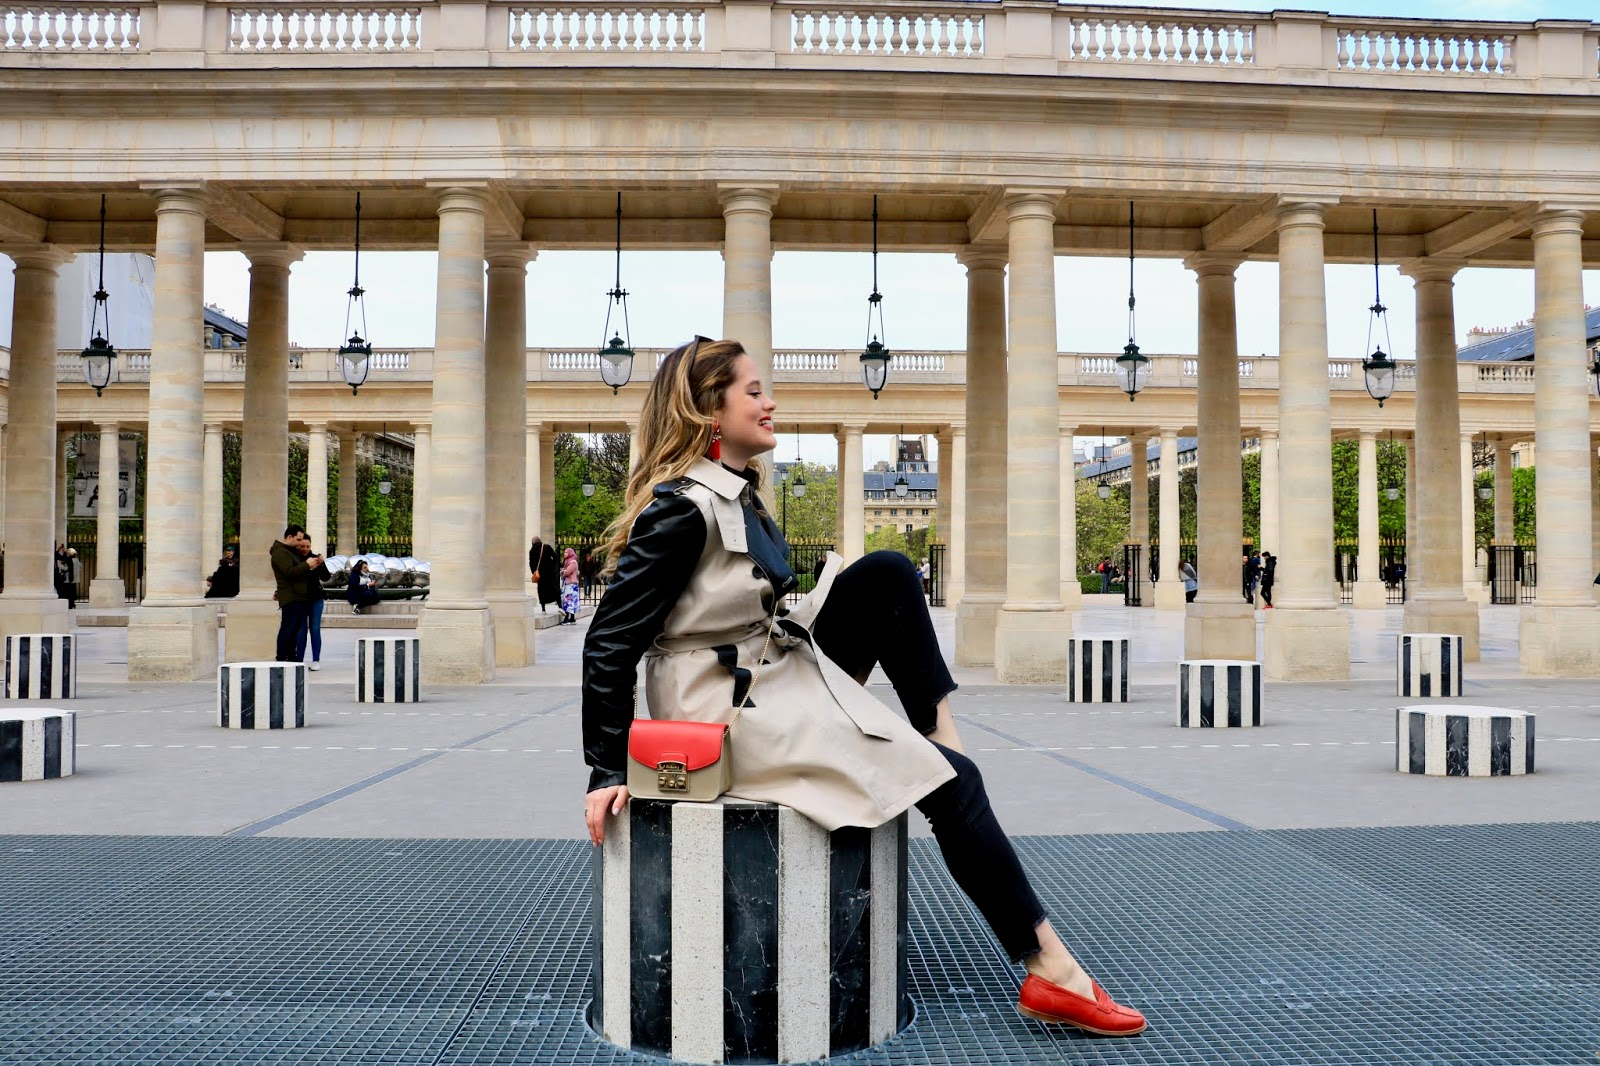 Paris Le Palais Royal blogger pics